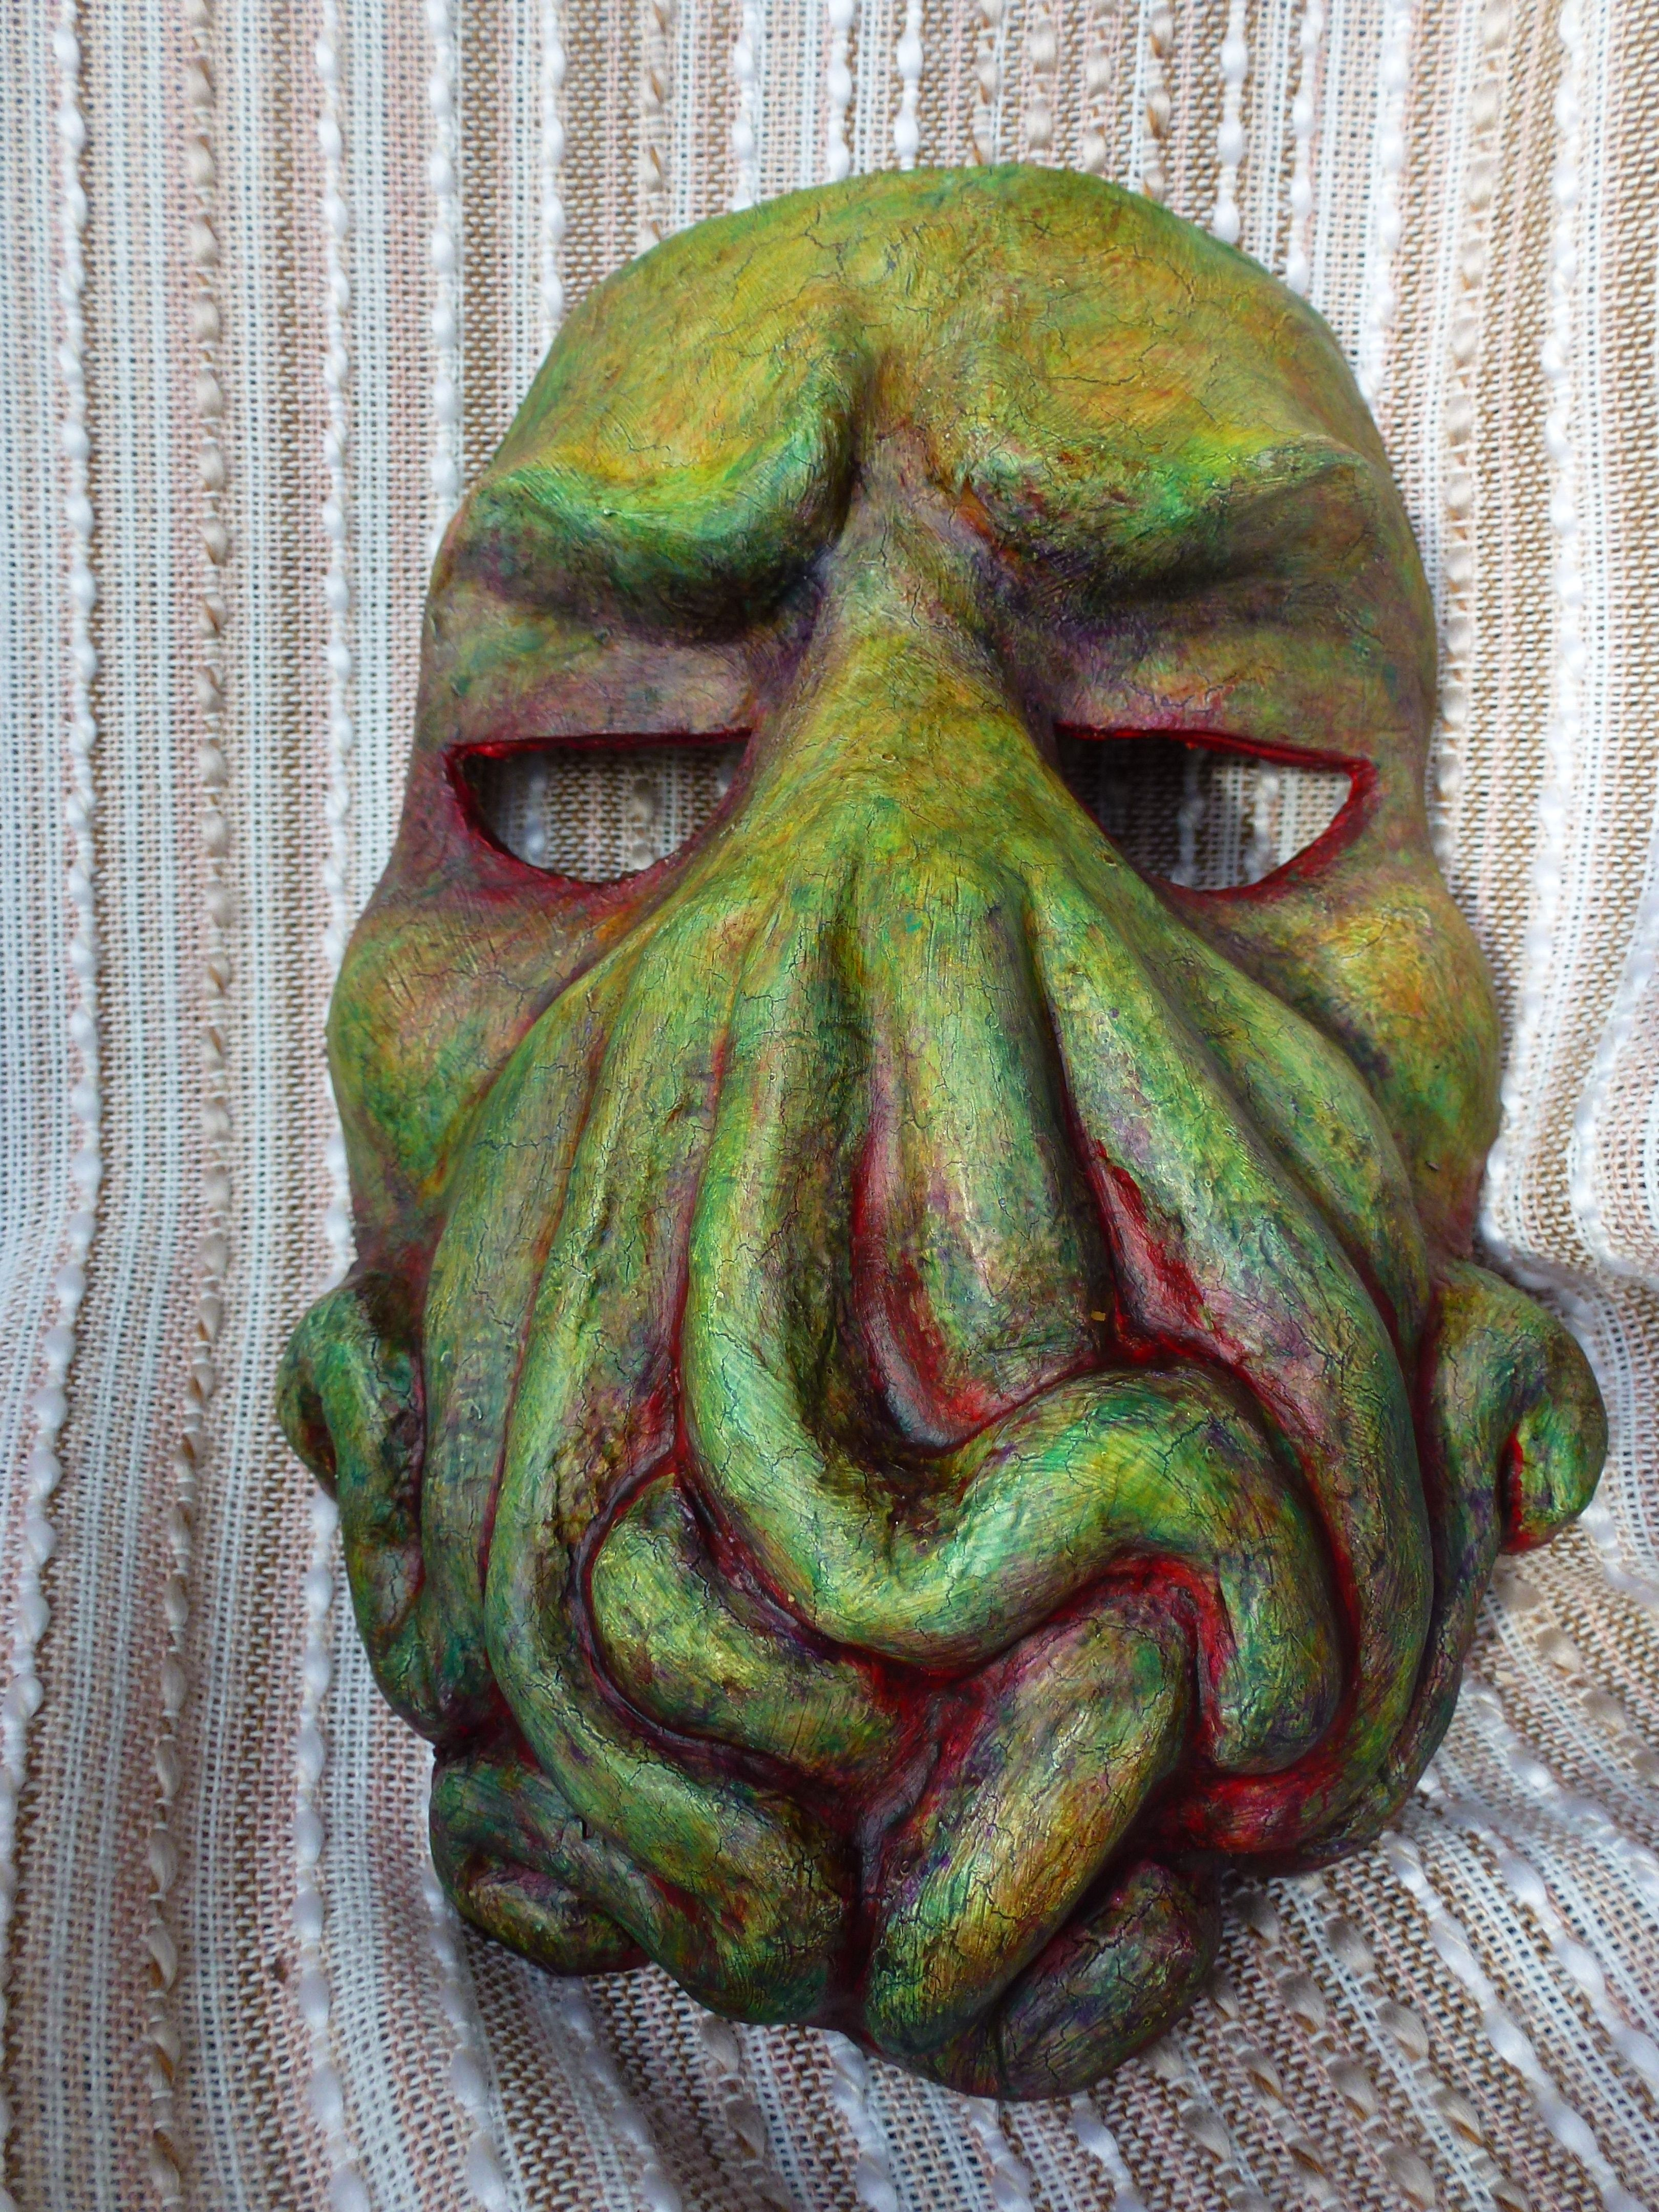 A particularly drowsylooking Cthulhu mask. Mask making